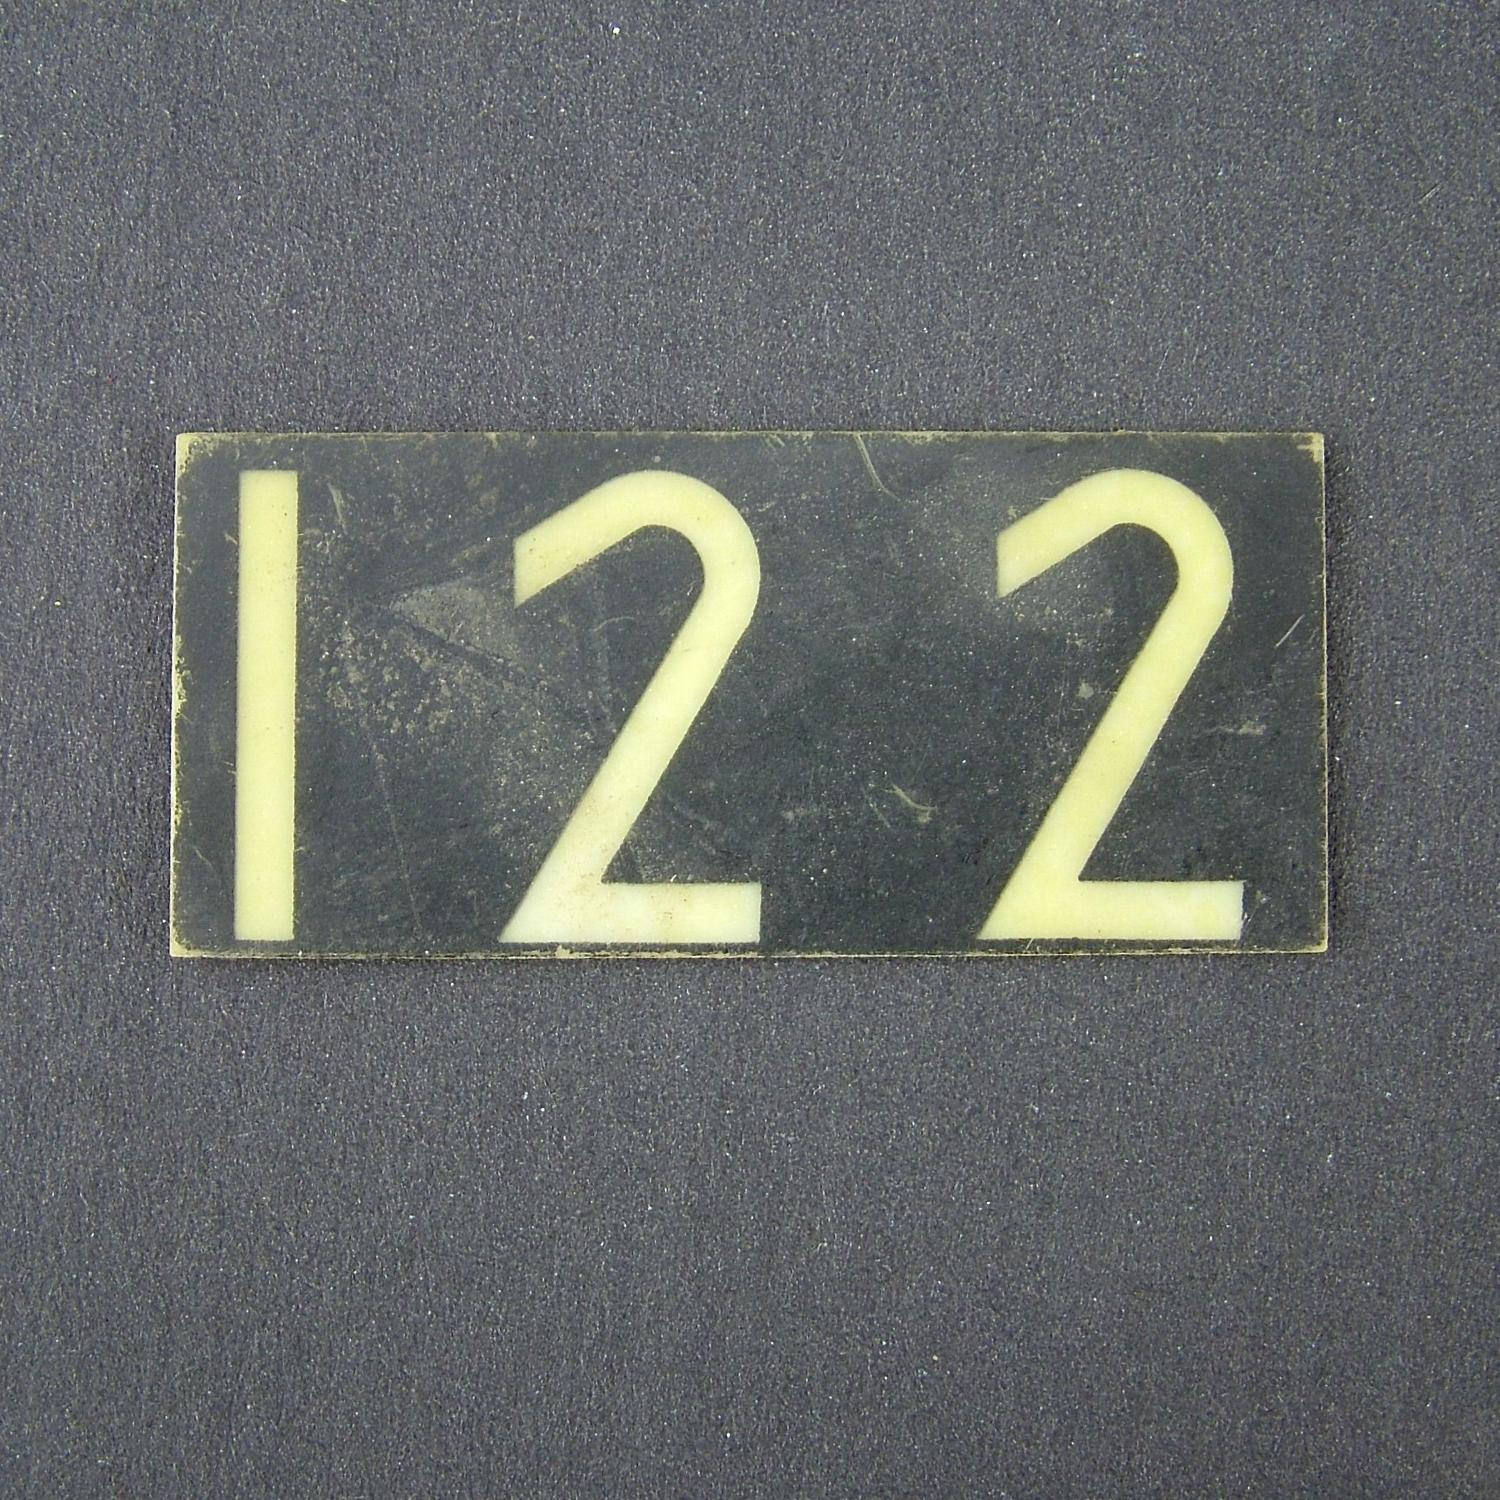 RAF operations room raid block tile '122'